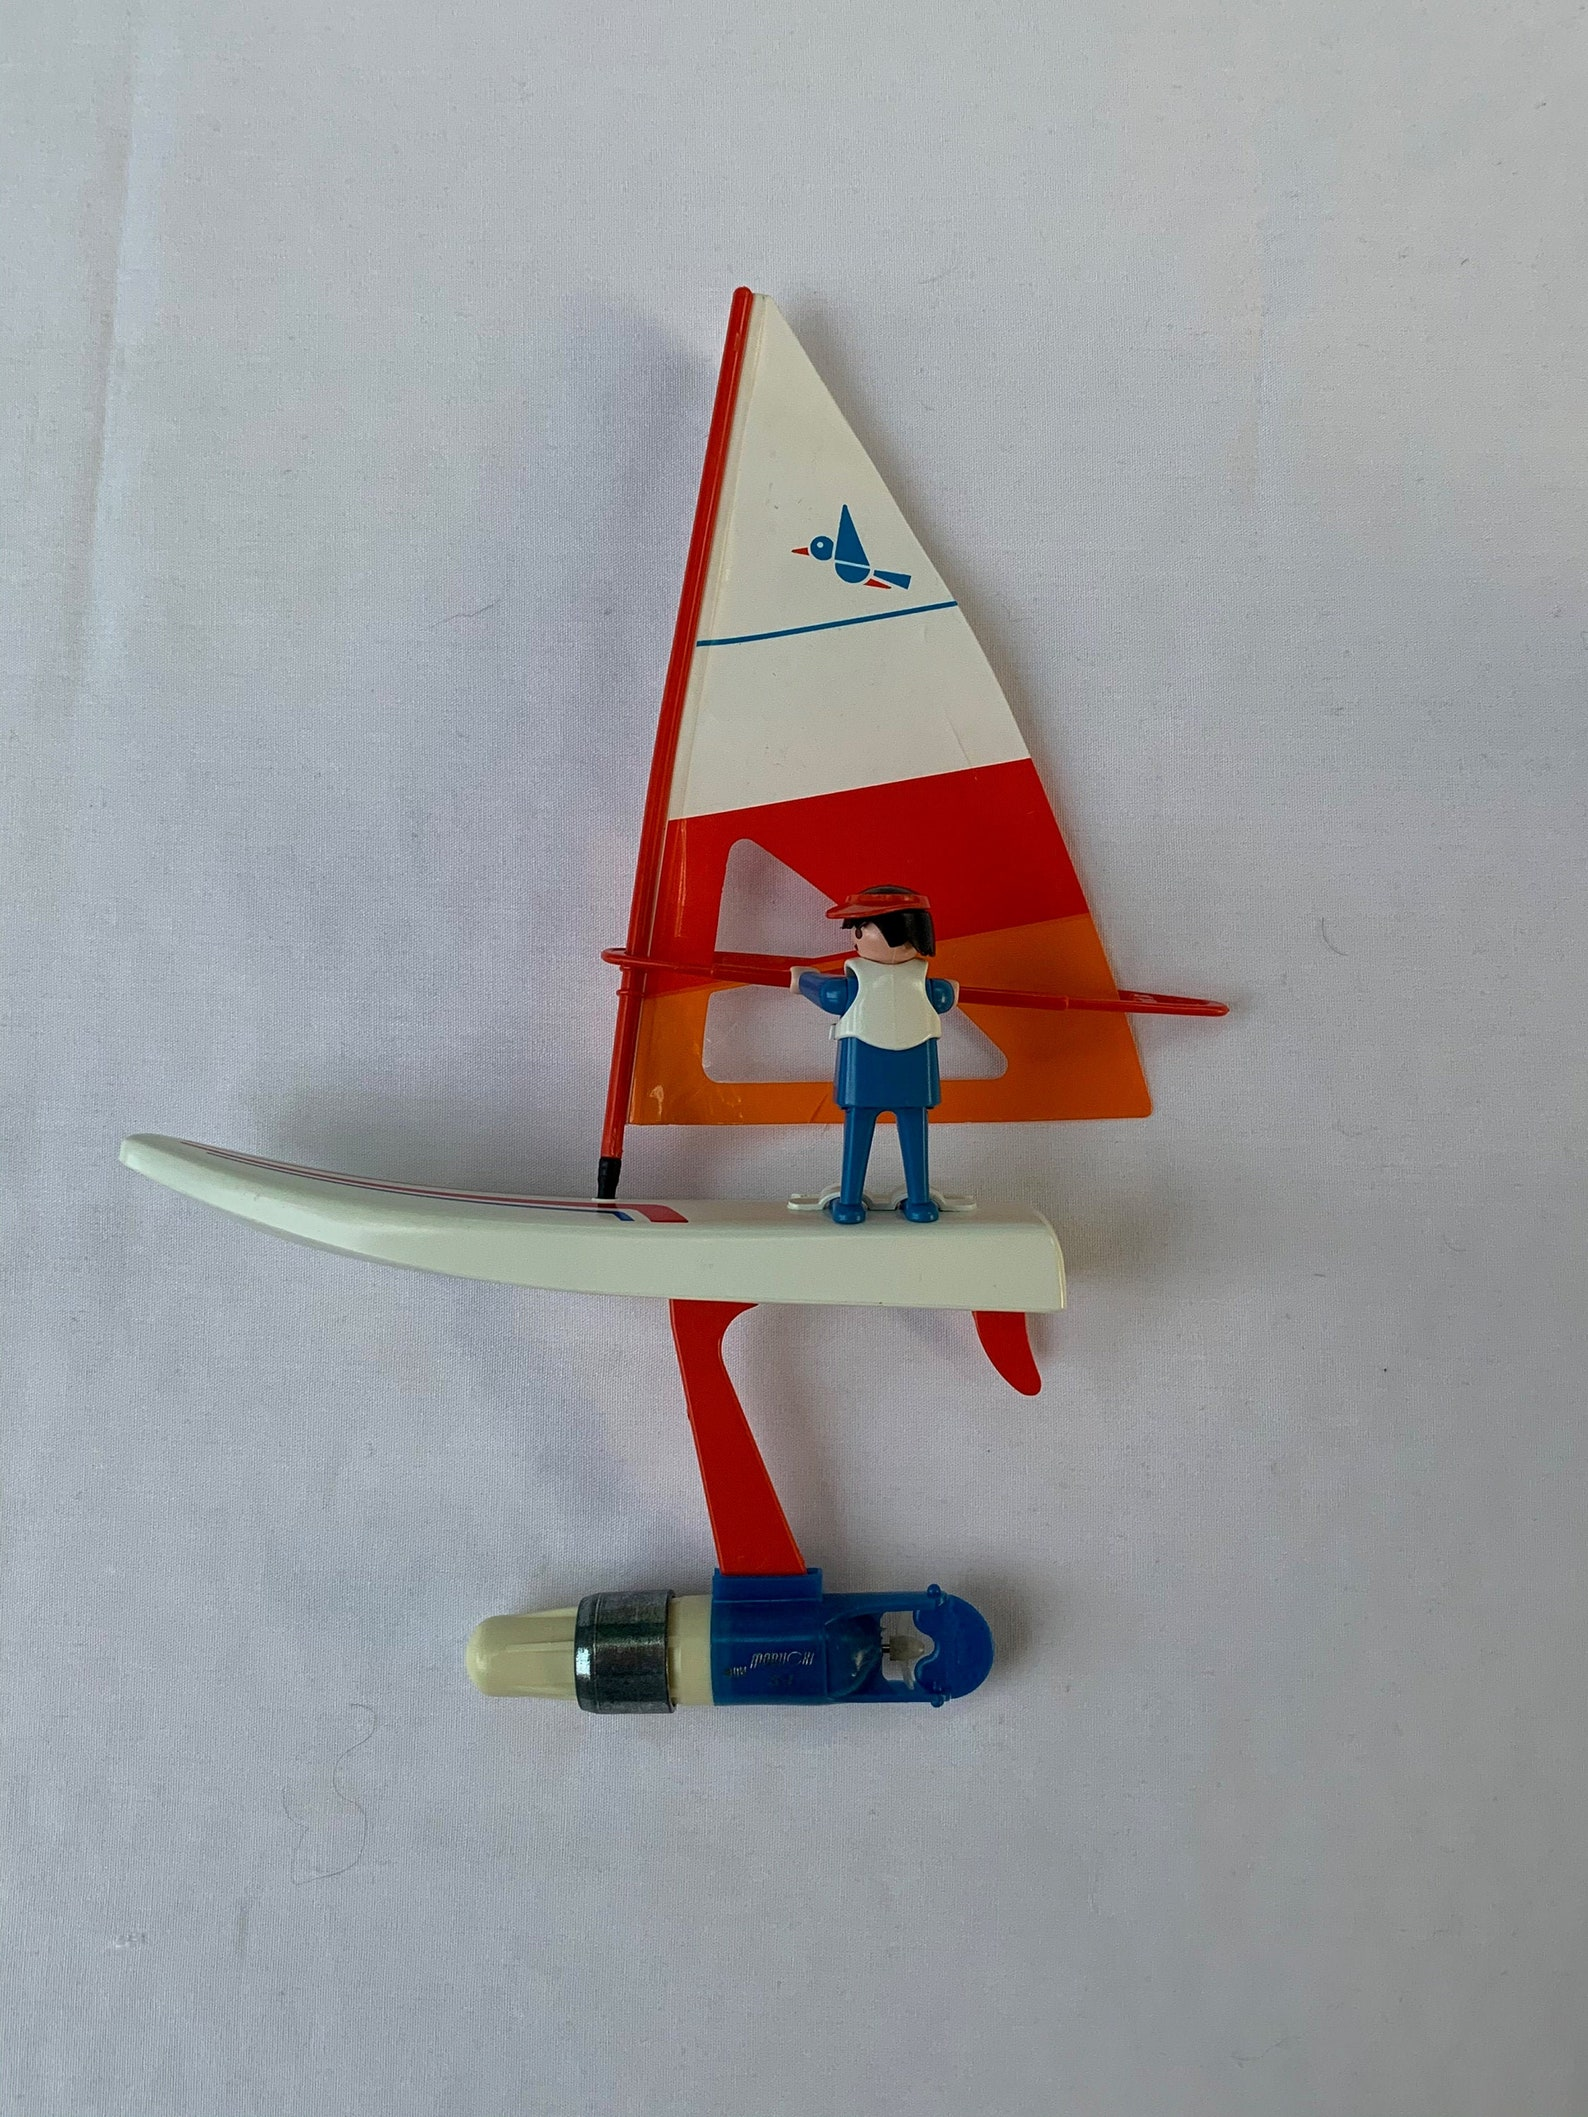 Vintage playmobil set 3584 motorized windsurfer/playmobil battery operated sailboat with windsurfer